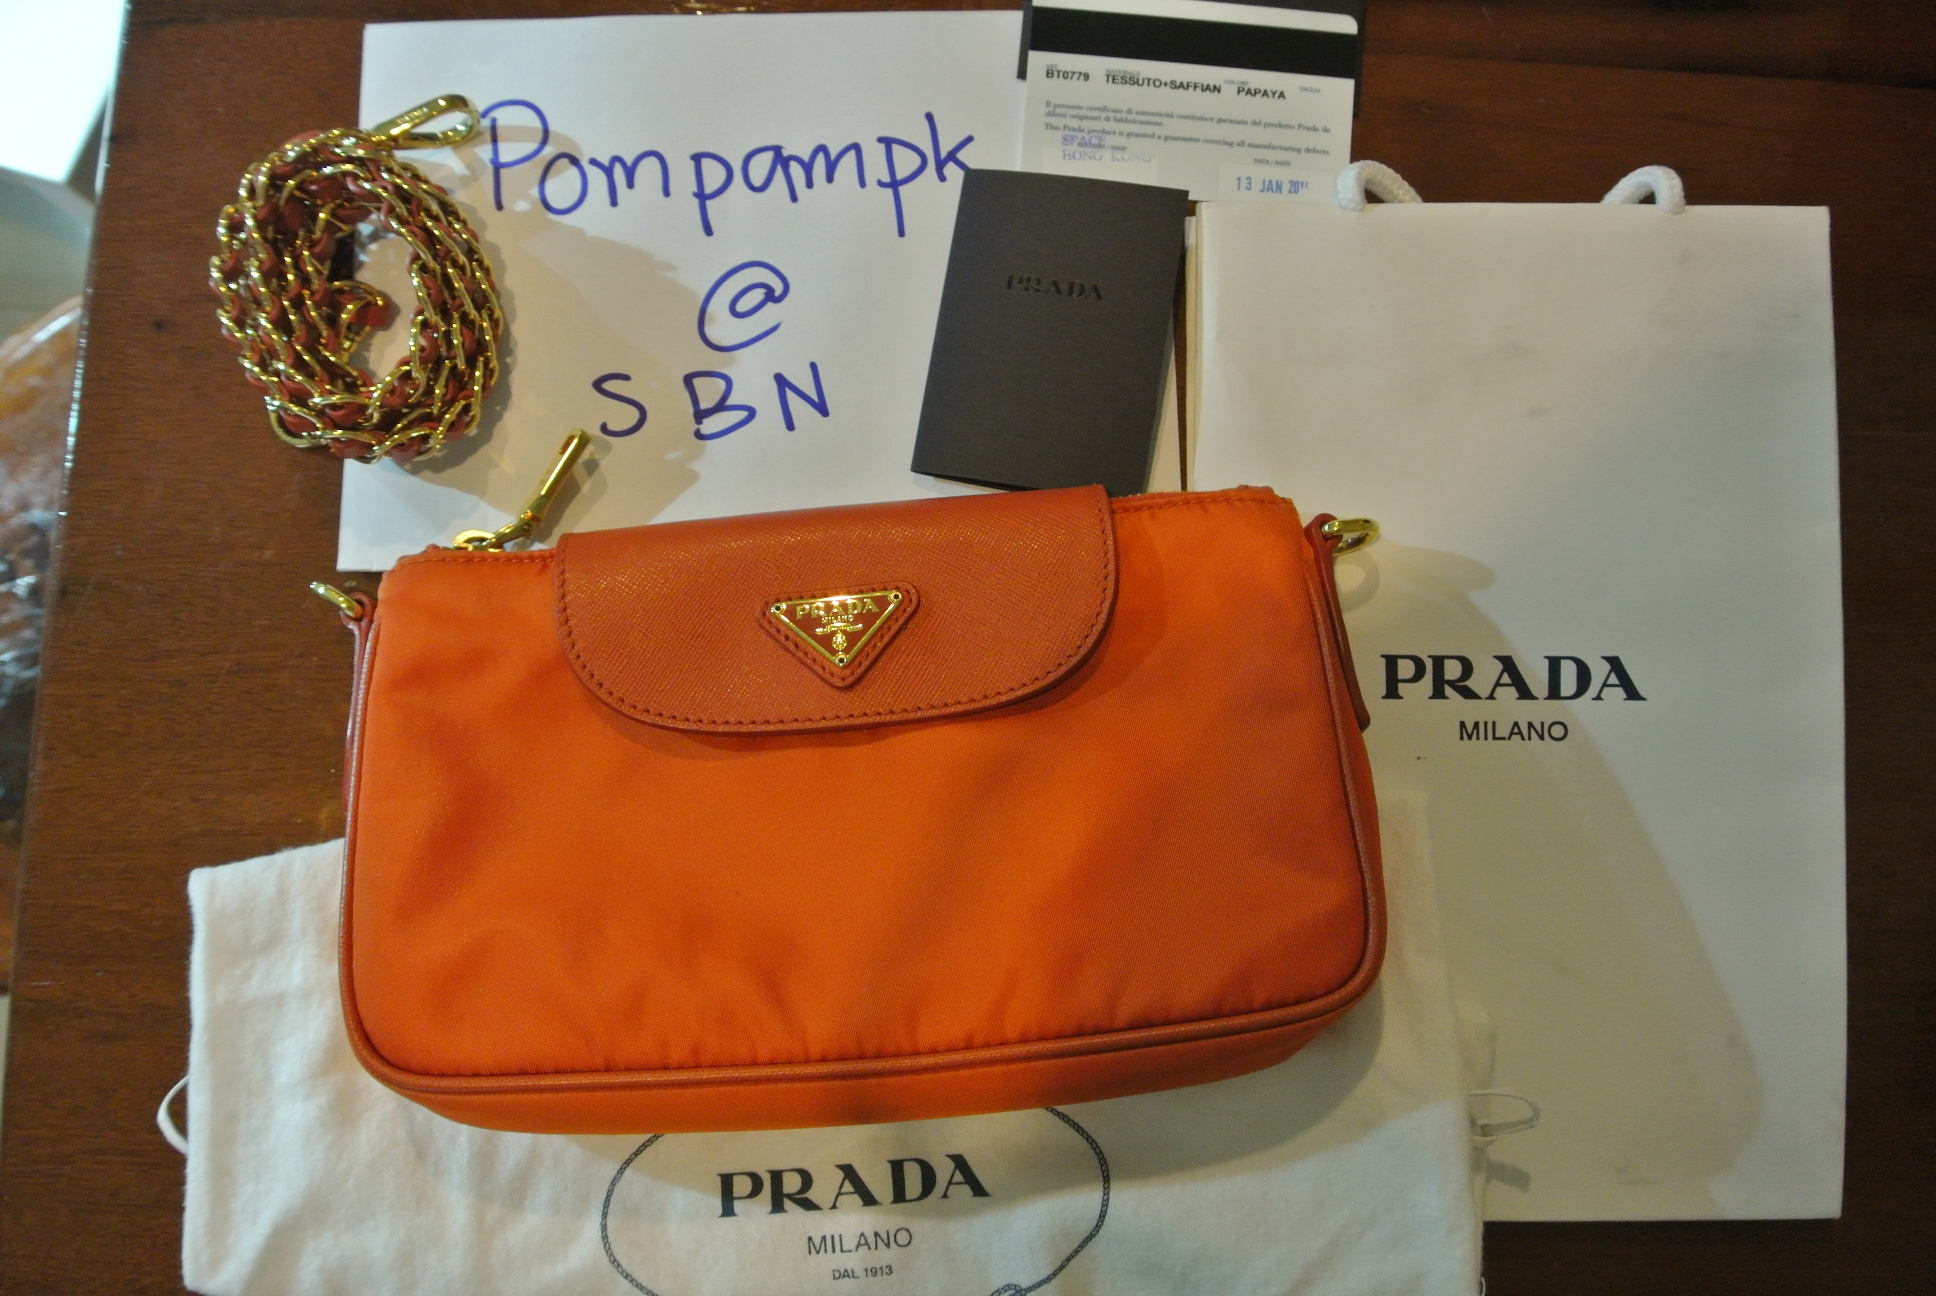 bfbafd5779d7 spain prada mirage small leather bag 99327 cd3fb  promo code for prada  nylon tessuto saffiano clutch sling bag bt0779 papaya. . . 18071